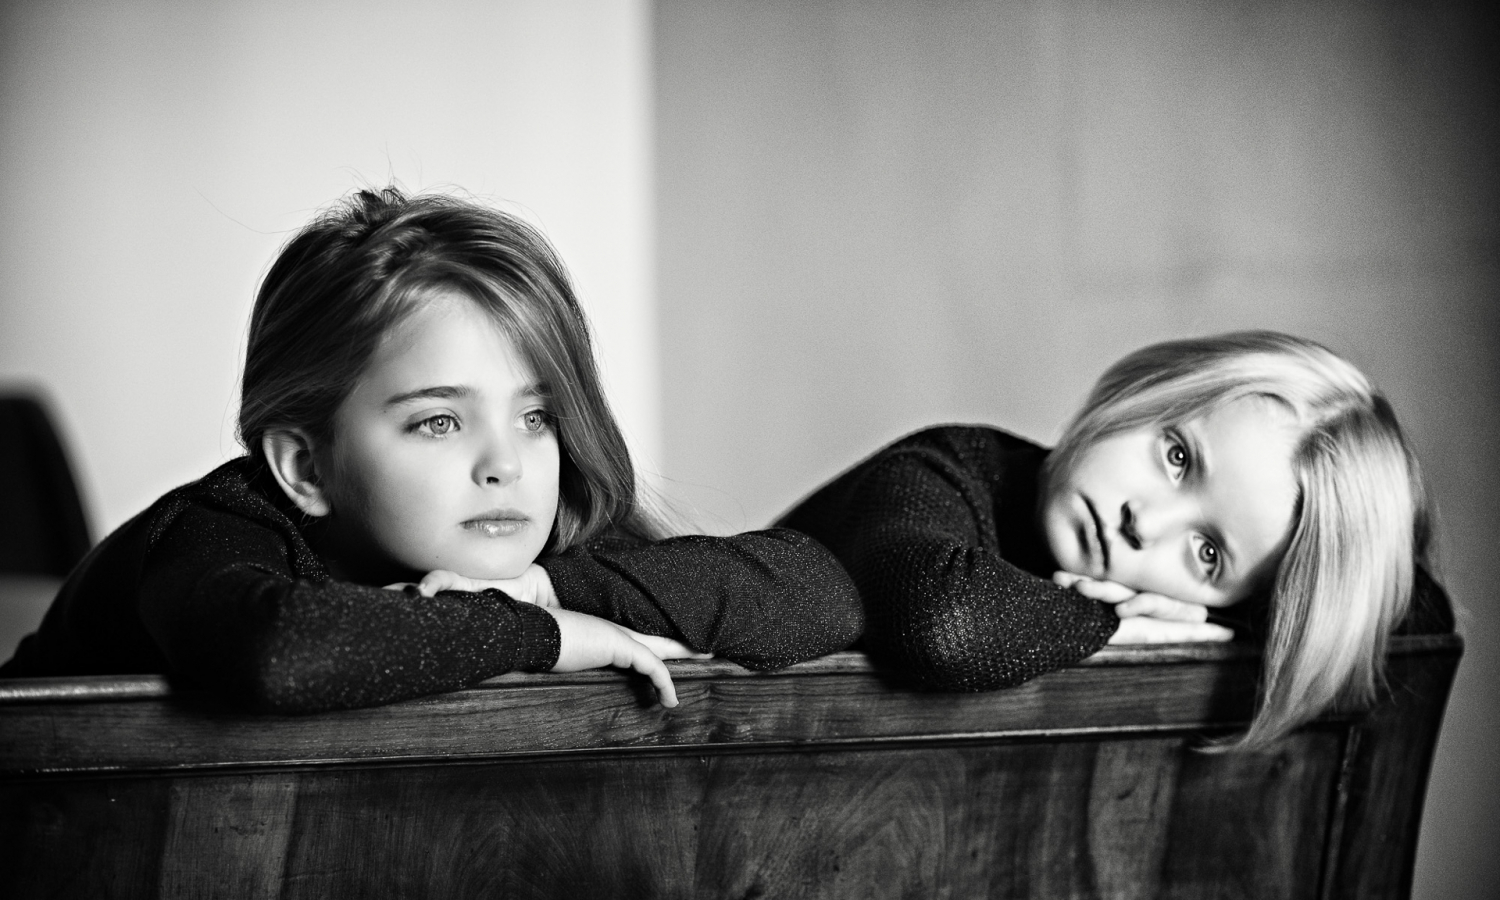 Fine_Art_Children_Photography_Kate_hopewell-smith-photography-7